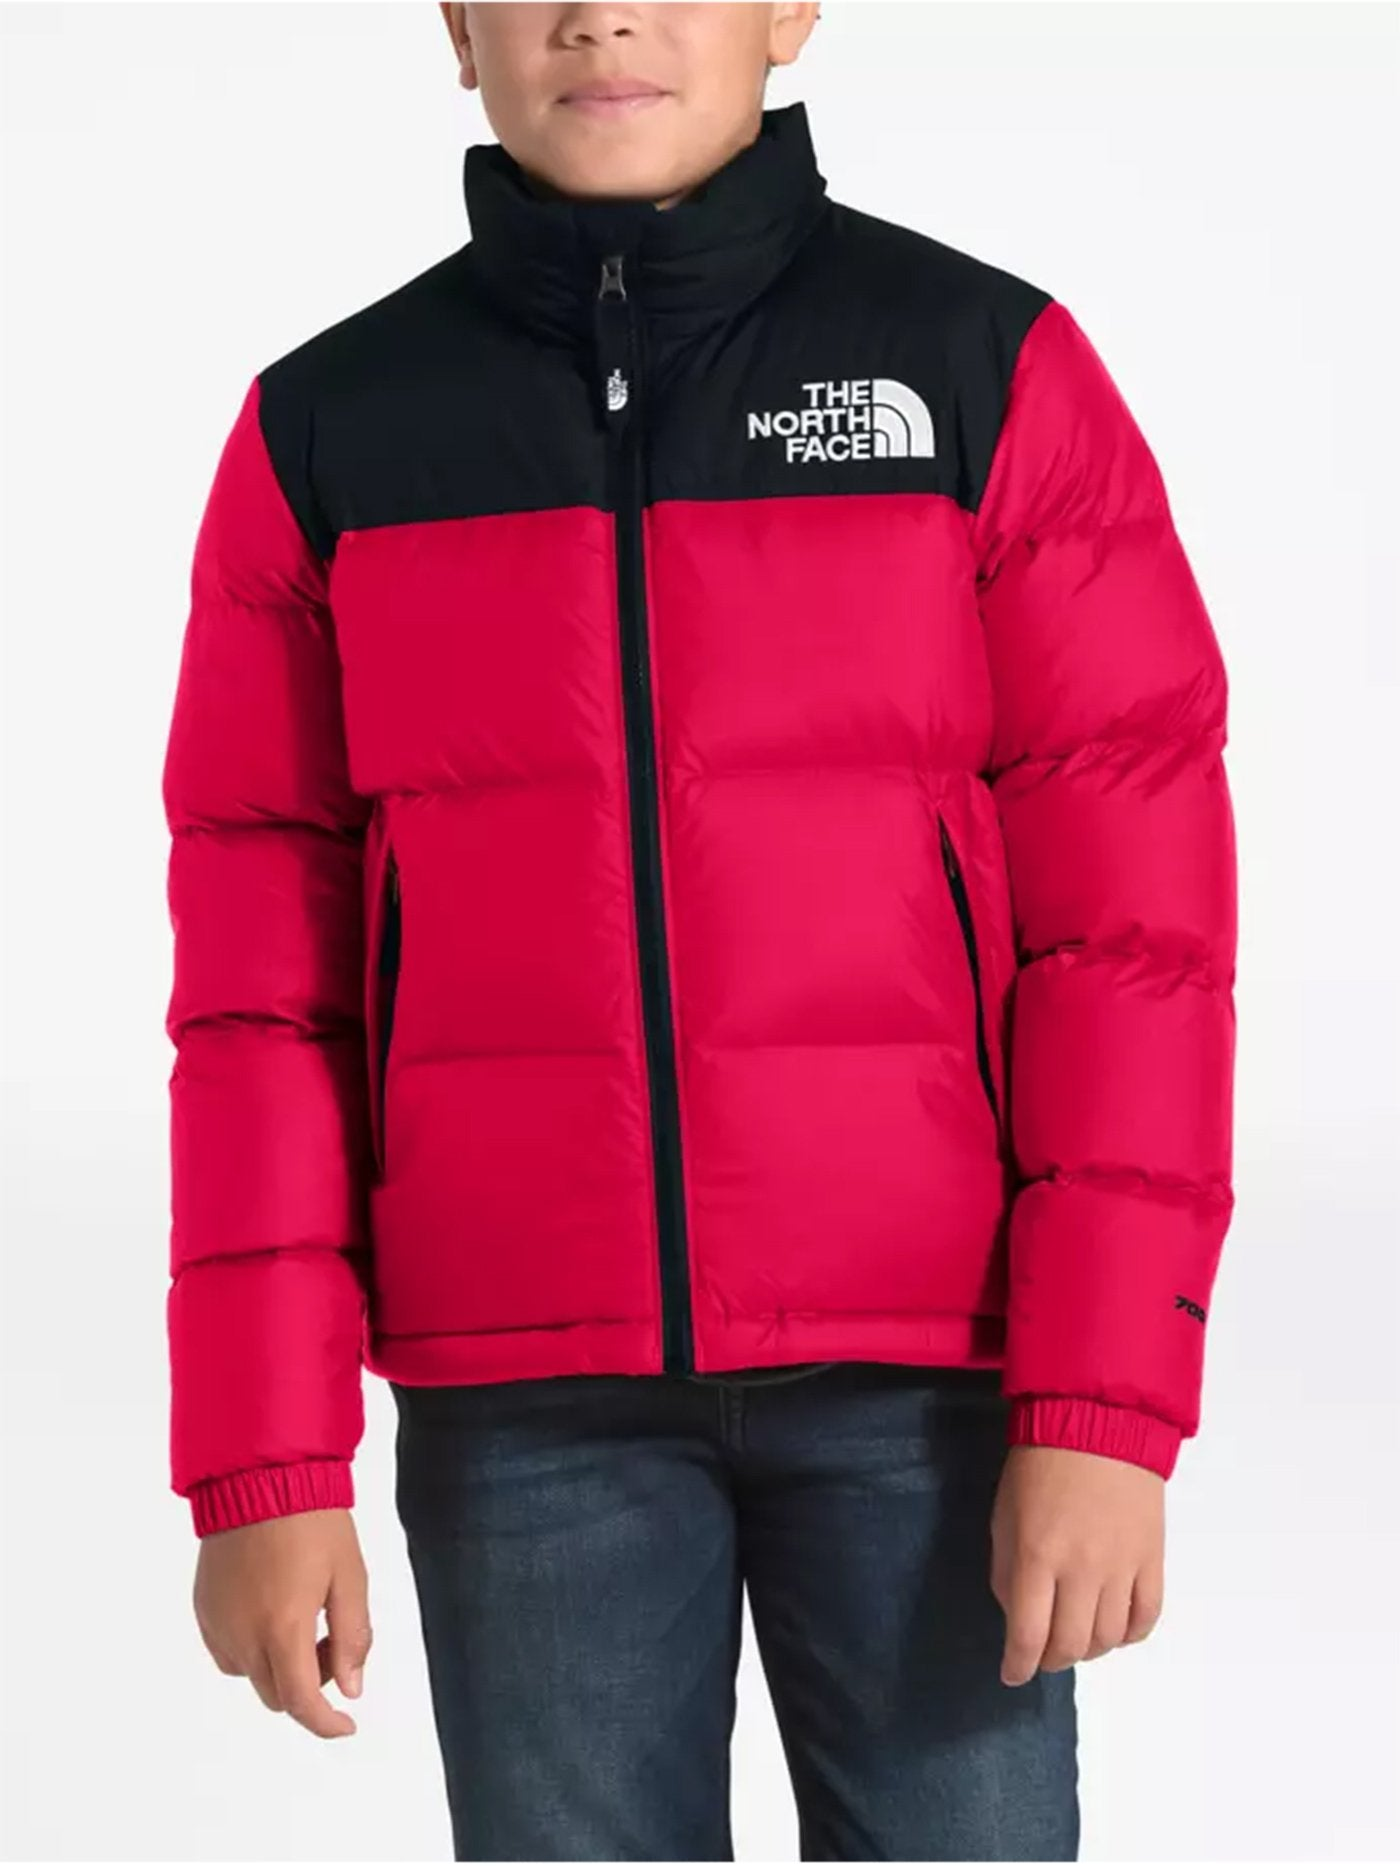 TNF RED (682)